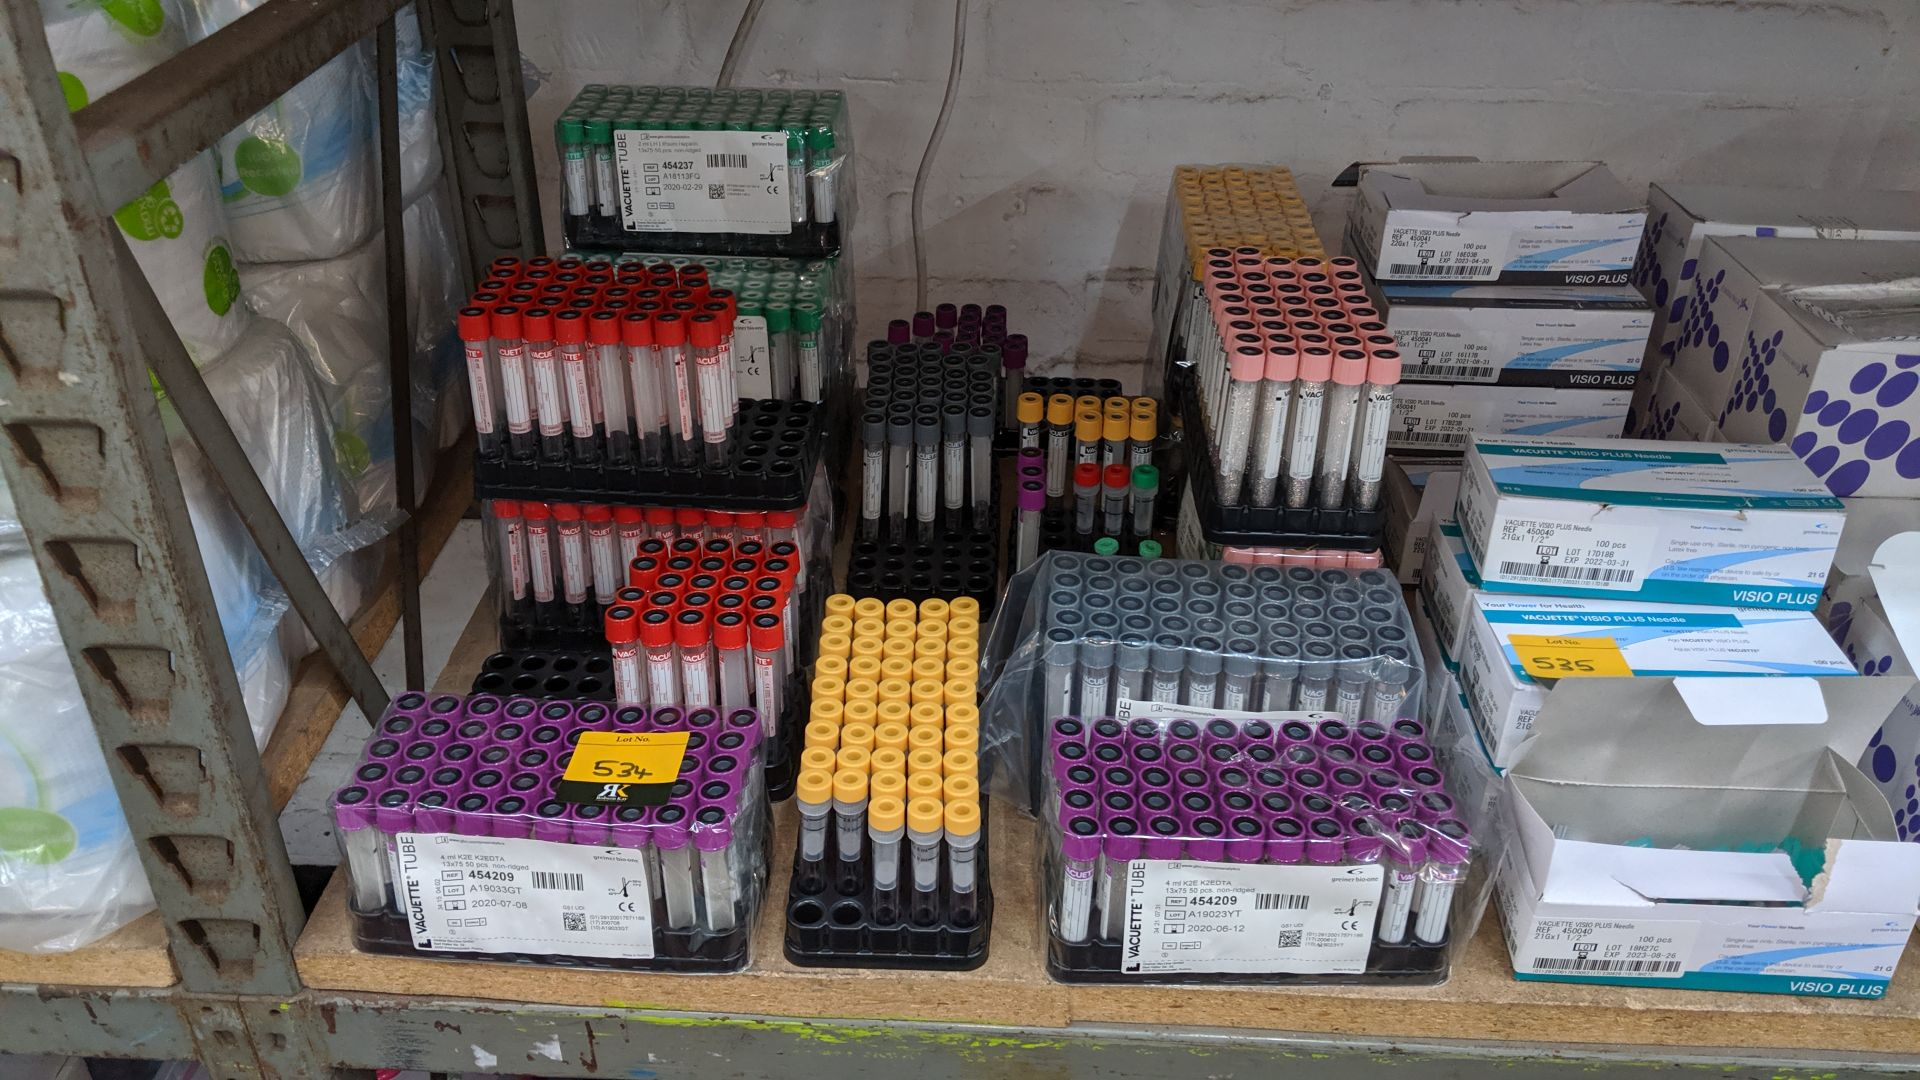 Lot 534 - Large quantity of medical sample tubes. This is one of a large number of lots used/owned by One To